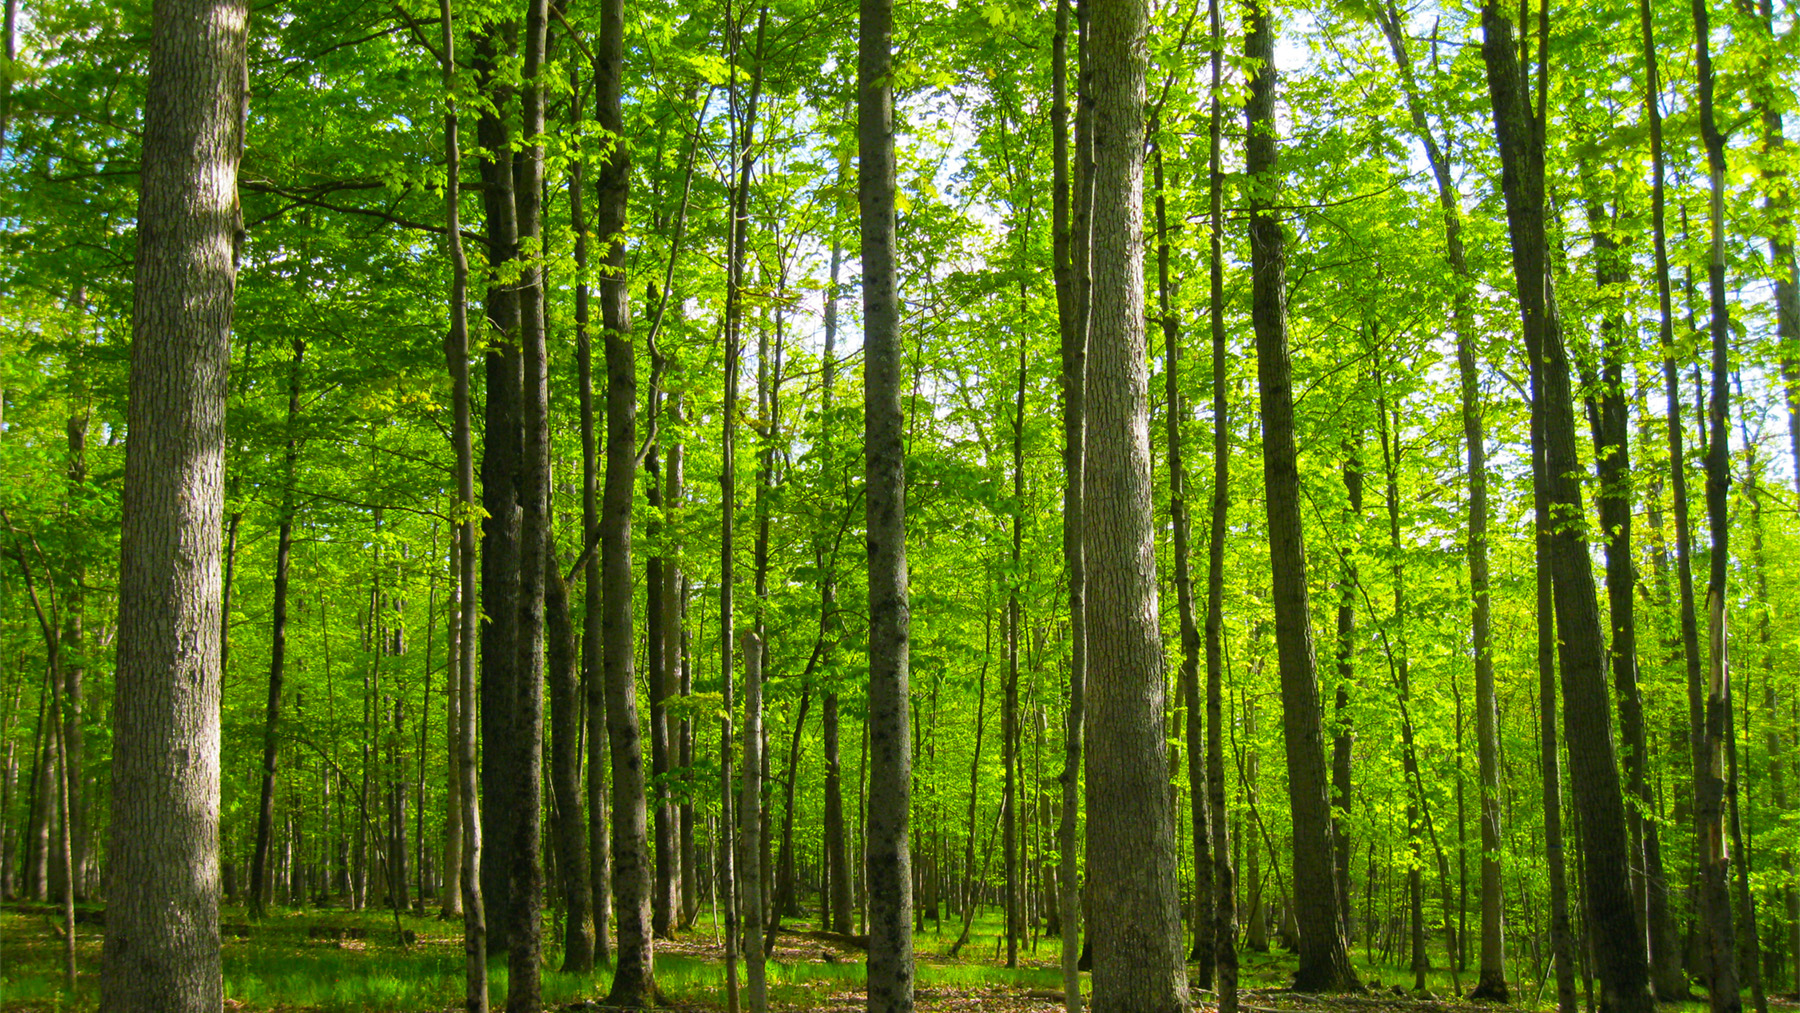 A forest of green summer trees